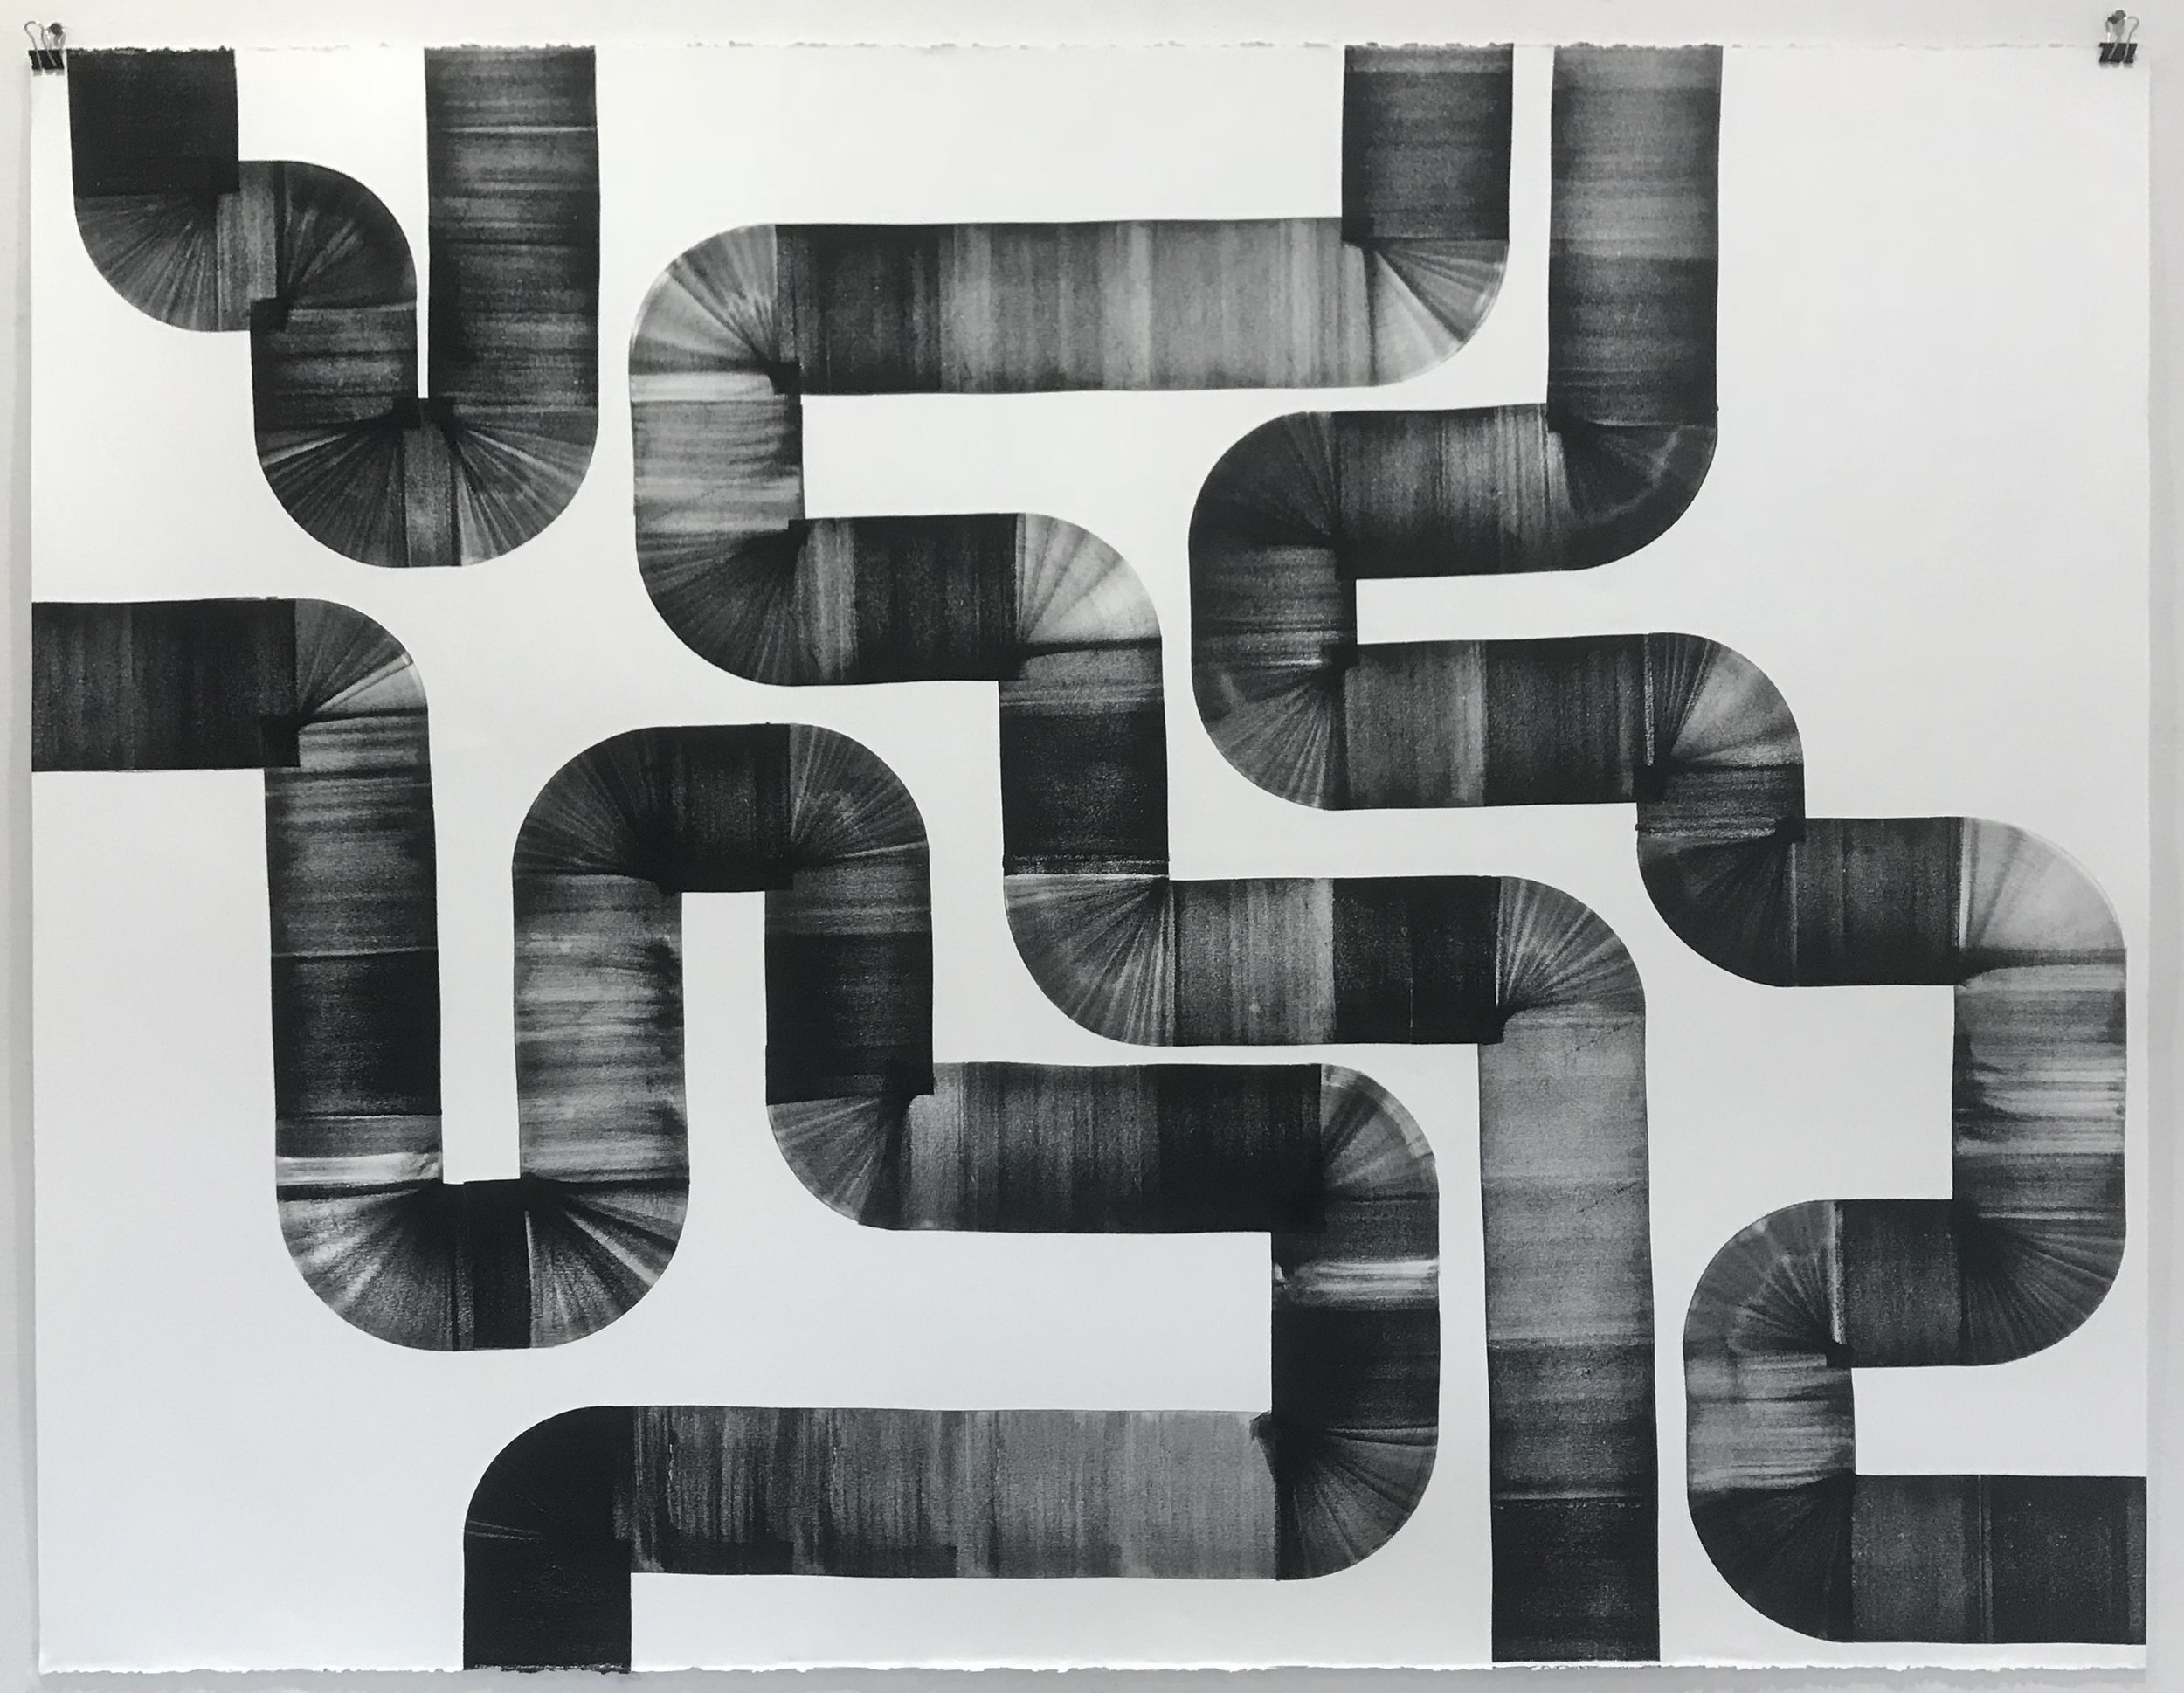 The Plumber Came By and Said the Pipes are Fine, 2018, Oil-based ink on paper, 38 x 50 inches